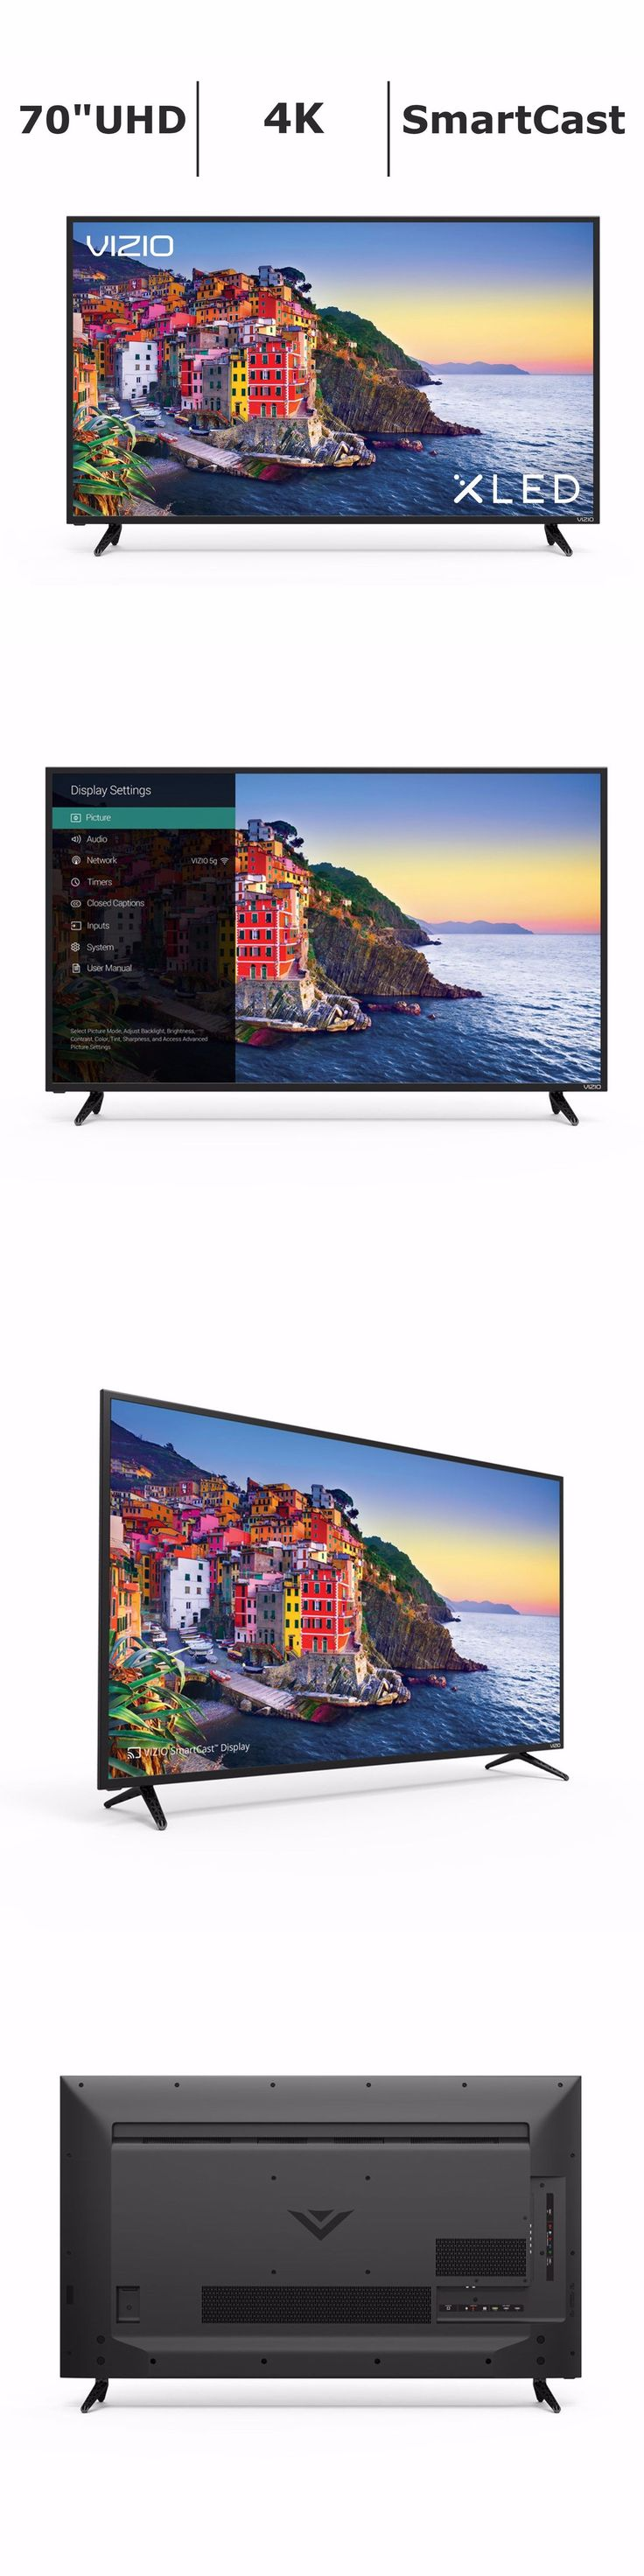 Televisions: Vizio 70 Inch Smartcast 4K Uhd Hdr Xled 120Hz Display W 4 Hdmi E70-E3 - New -> BUY IT NOW ONLY: $1379.07 on eBay!